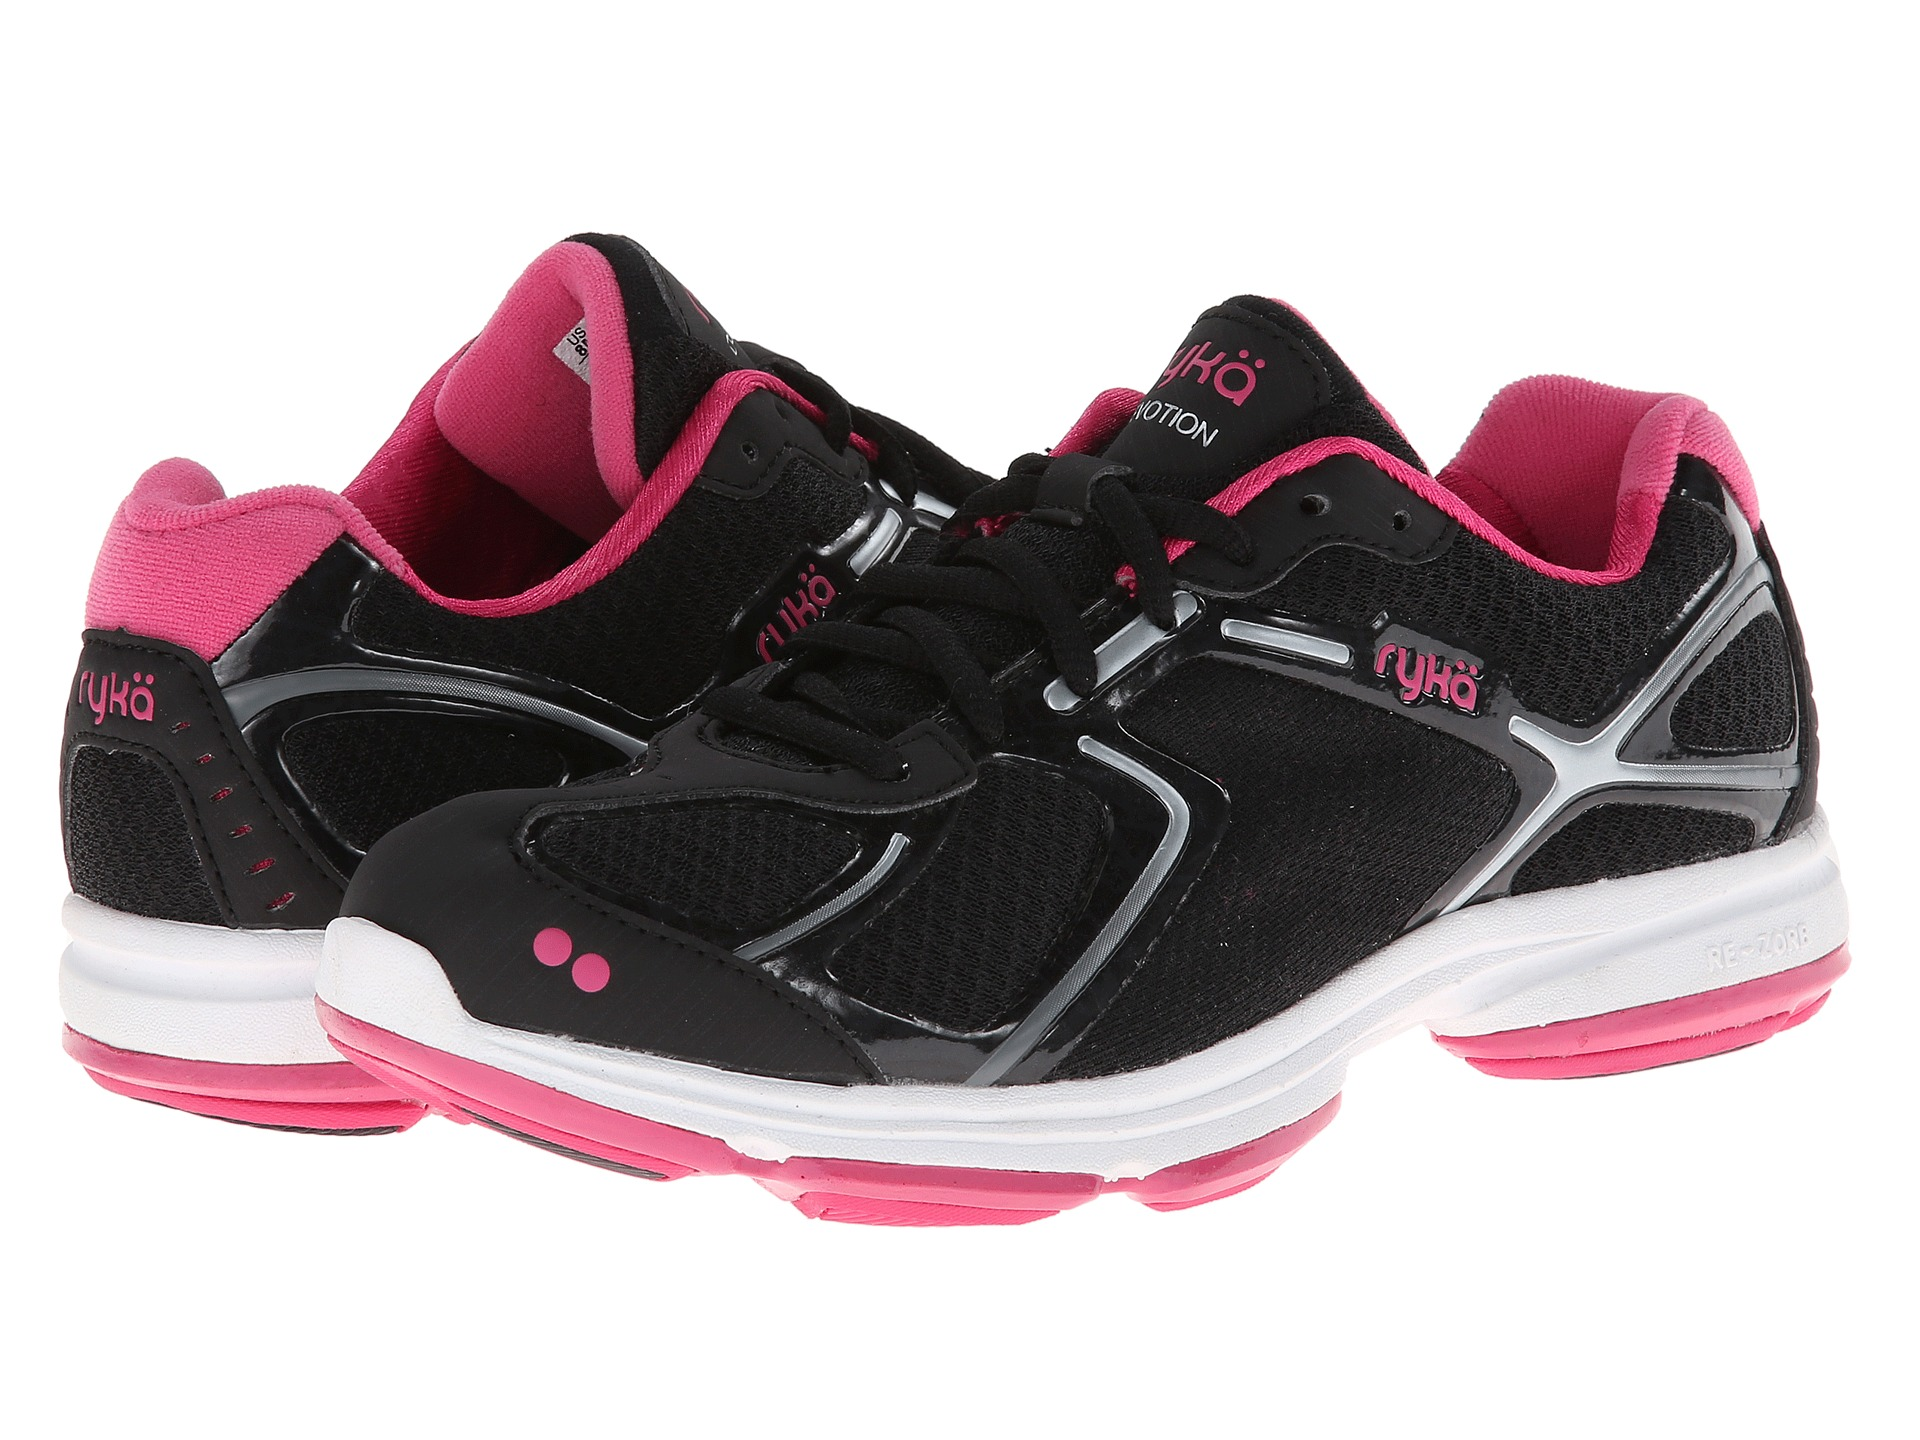 Ryka is a wonderful brand that makes shoes just for women and has been crafting great products for over 25 years. Ryka offers affordable and stylish running shoes .